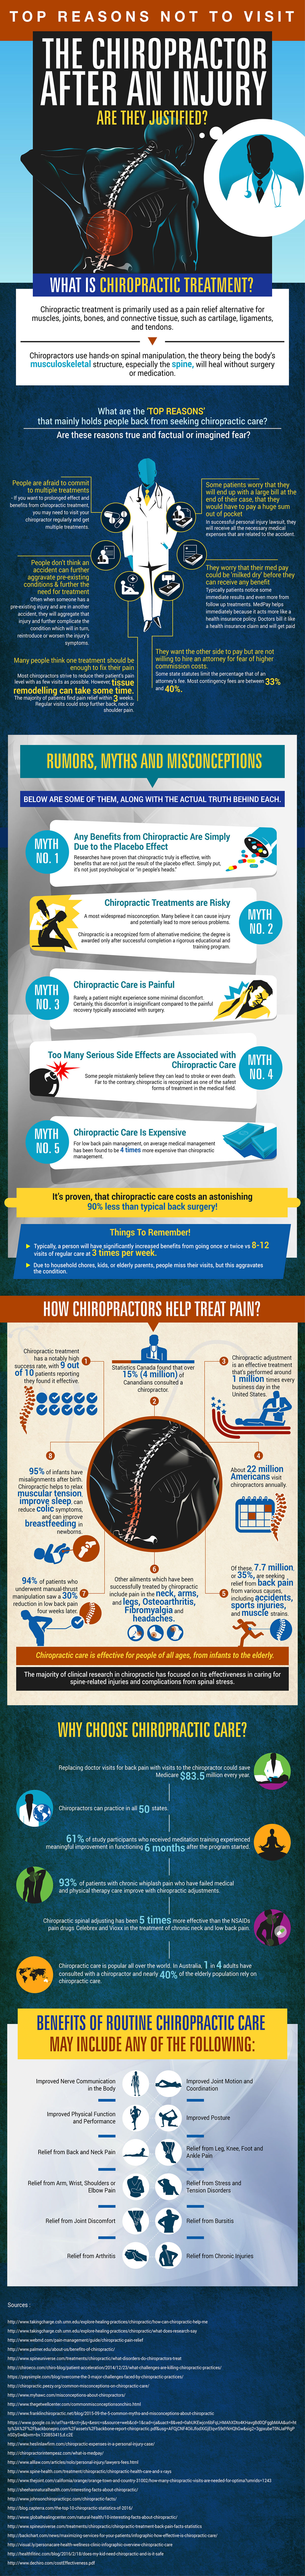 Debunking Chiropractic Care Myths